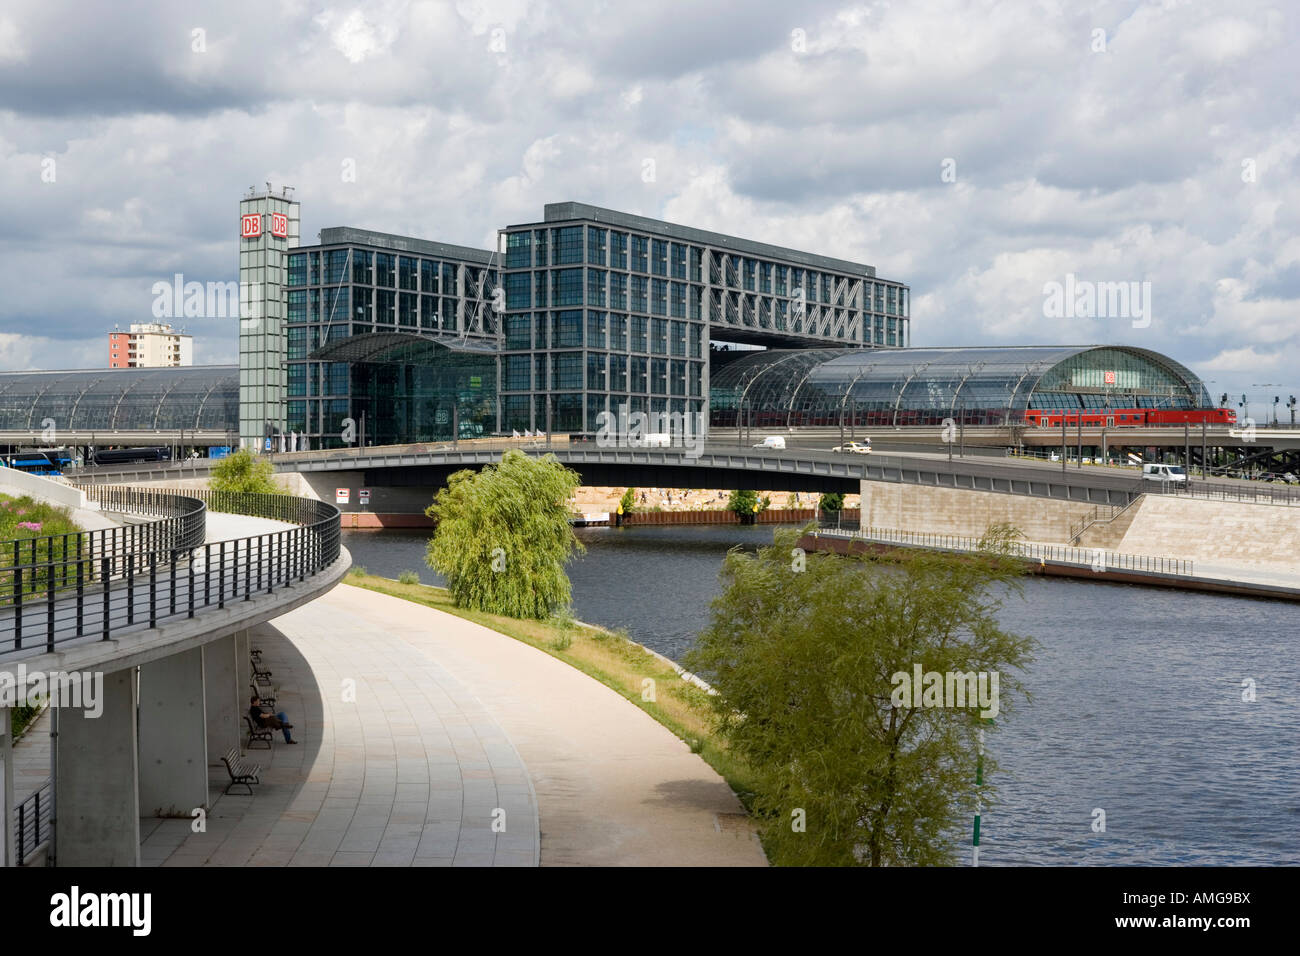 Central Station, Berlin. Architect: Gerkan, Marg and Partners - Stock Image